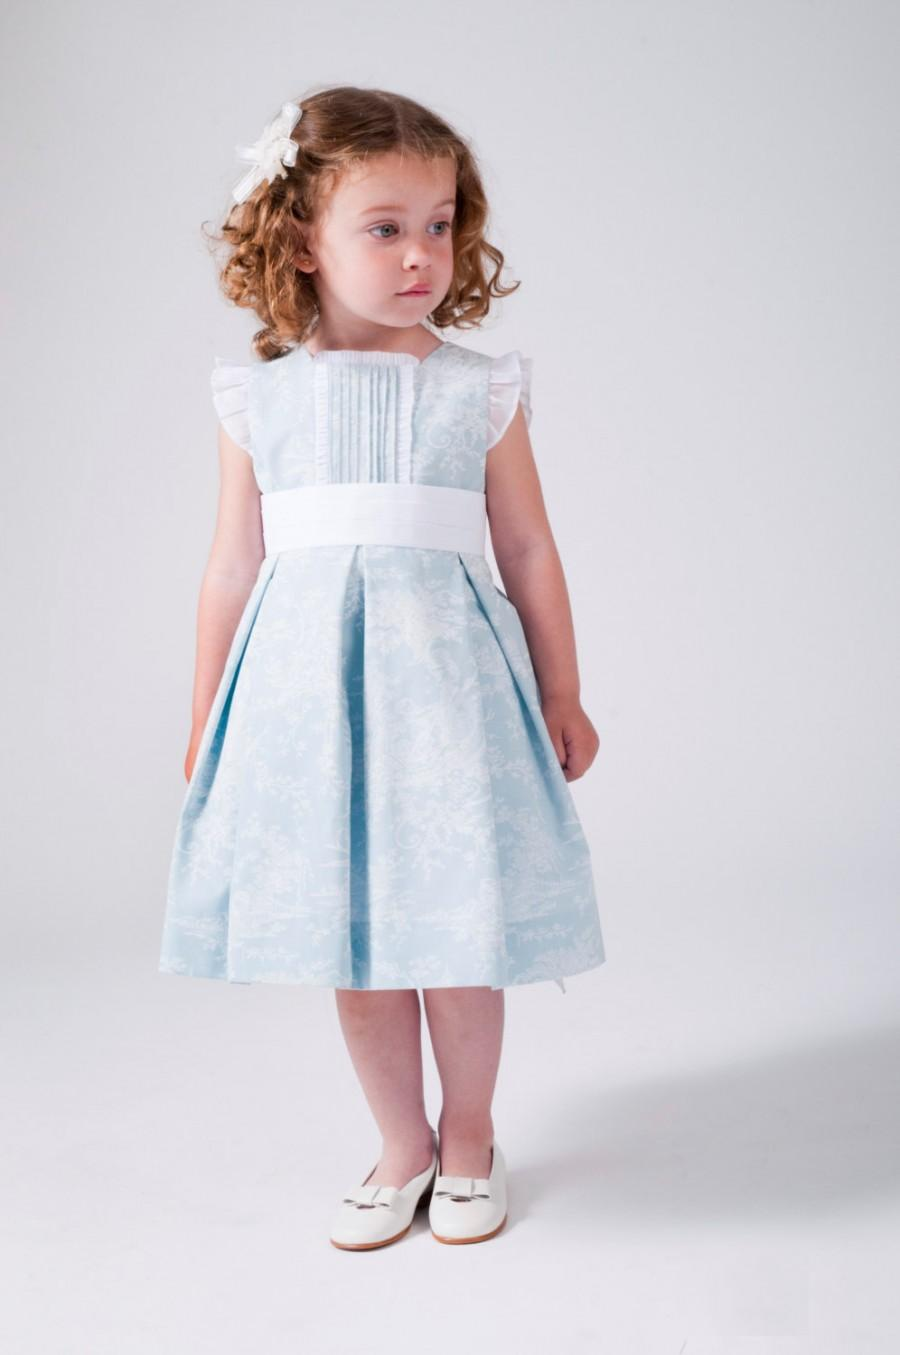 You've searched for Flower Girl Dresses! Etsy has thousands of unique options to choose from, like handmade goods, vintage finds, and one-of-a-kind gifts. Our global marketplace of sellers can help you find extraordinary items at any price range.